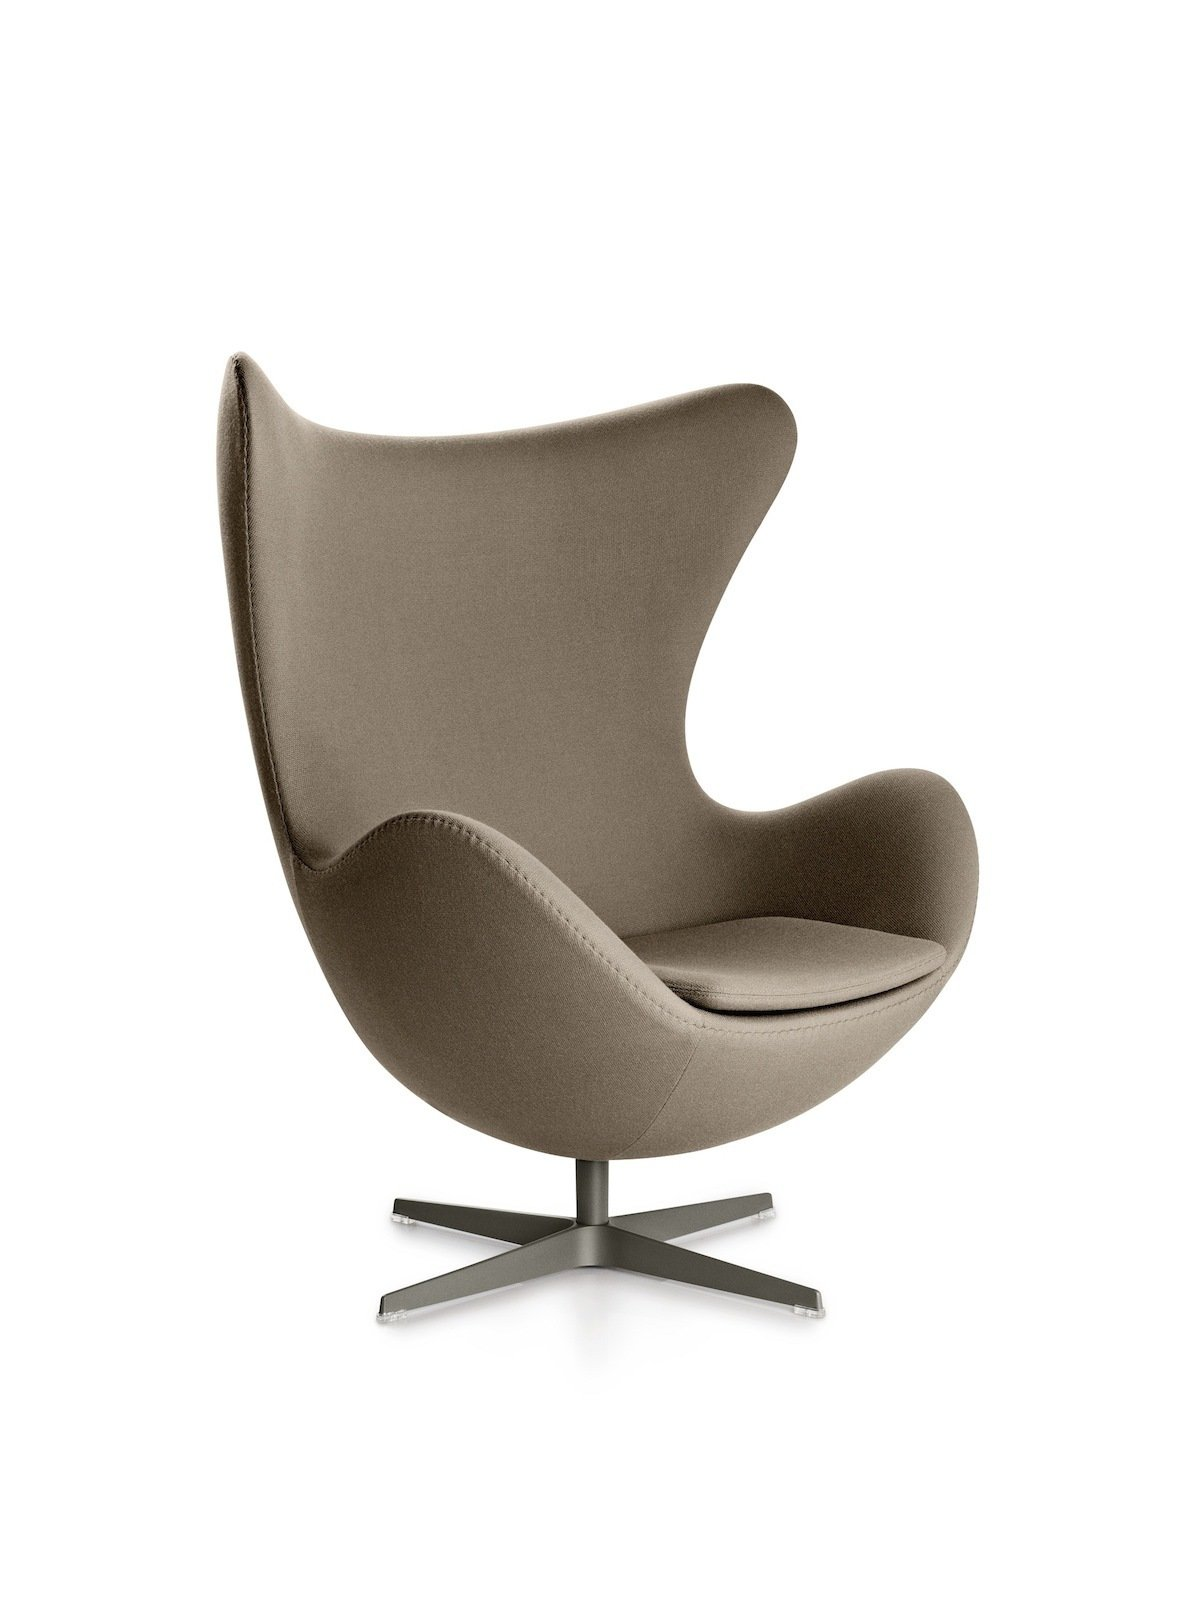 """The Egg Chair, another Arne Jacobsen design—this one from 1958—was originally created for the Royal Hotel in Copenhagen. Would today's numerous """"inspired-by"""" copies really make Jacobsen roll in his grave, as Rosenkvist puts it?  Photo 2 of 4 in Fritz Hansen on Knockoffs and Authentic Design"""